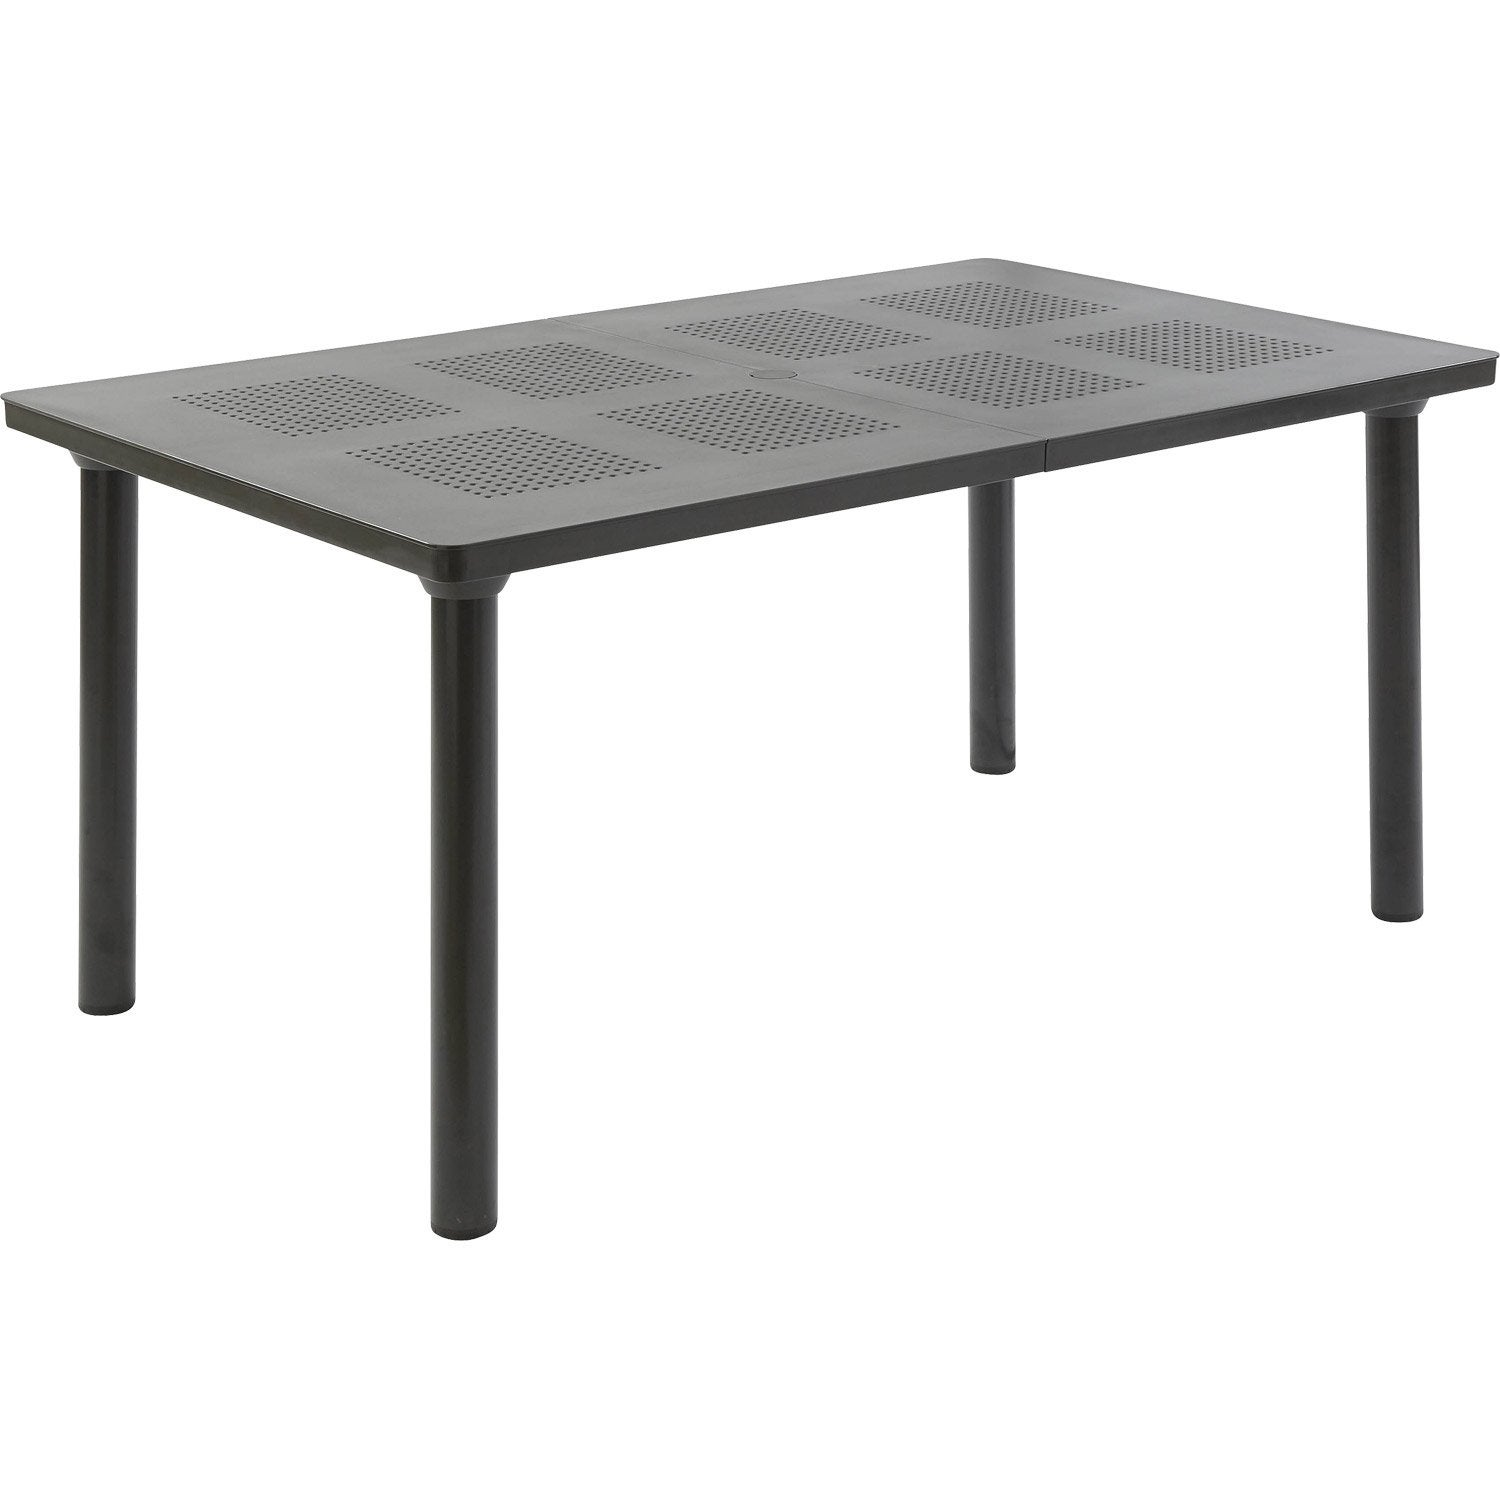 Salon de jardin exterieur leroy merlin for Leroy merlin table basse